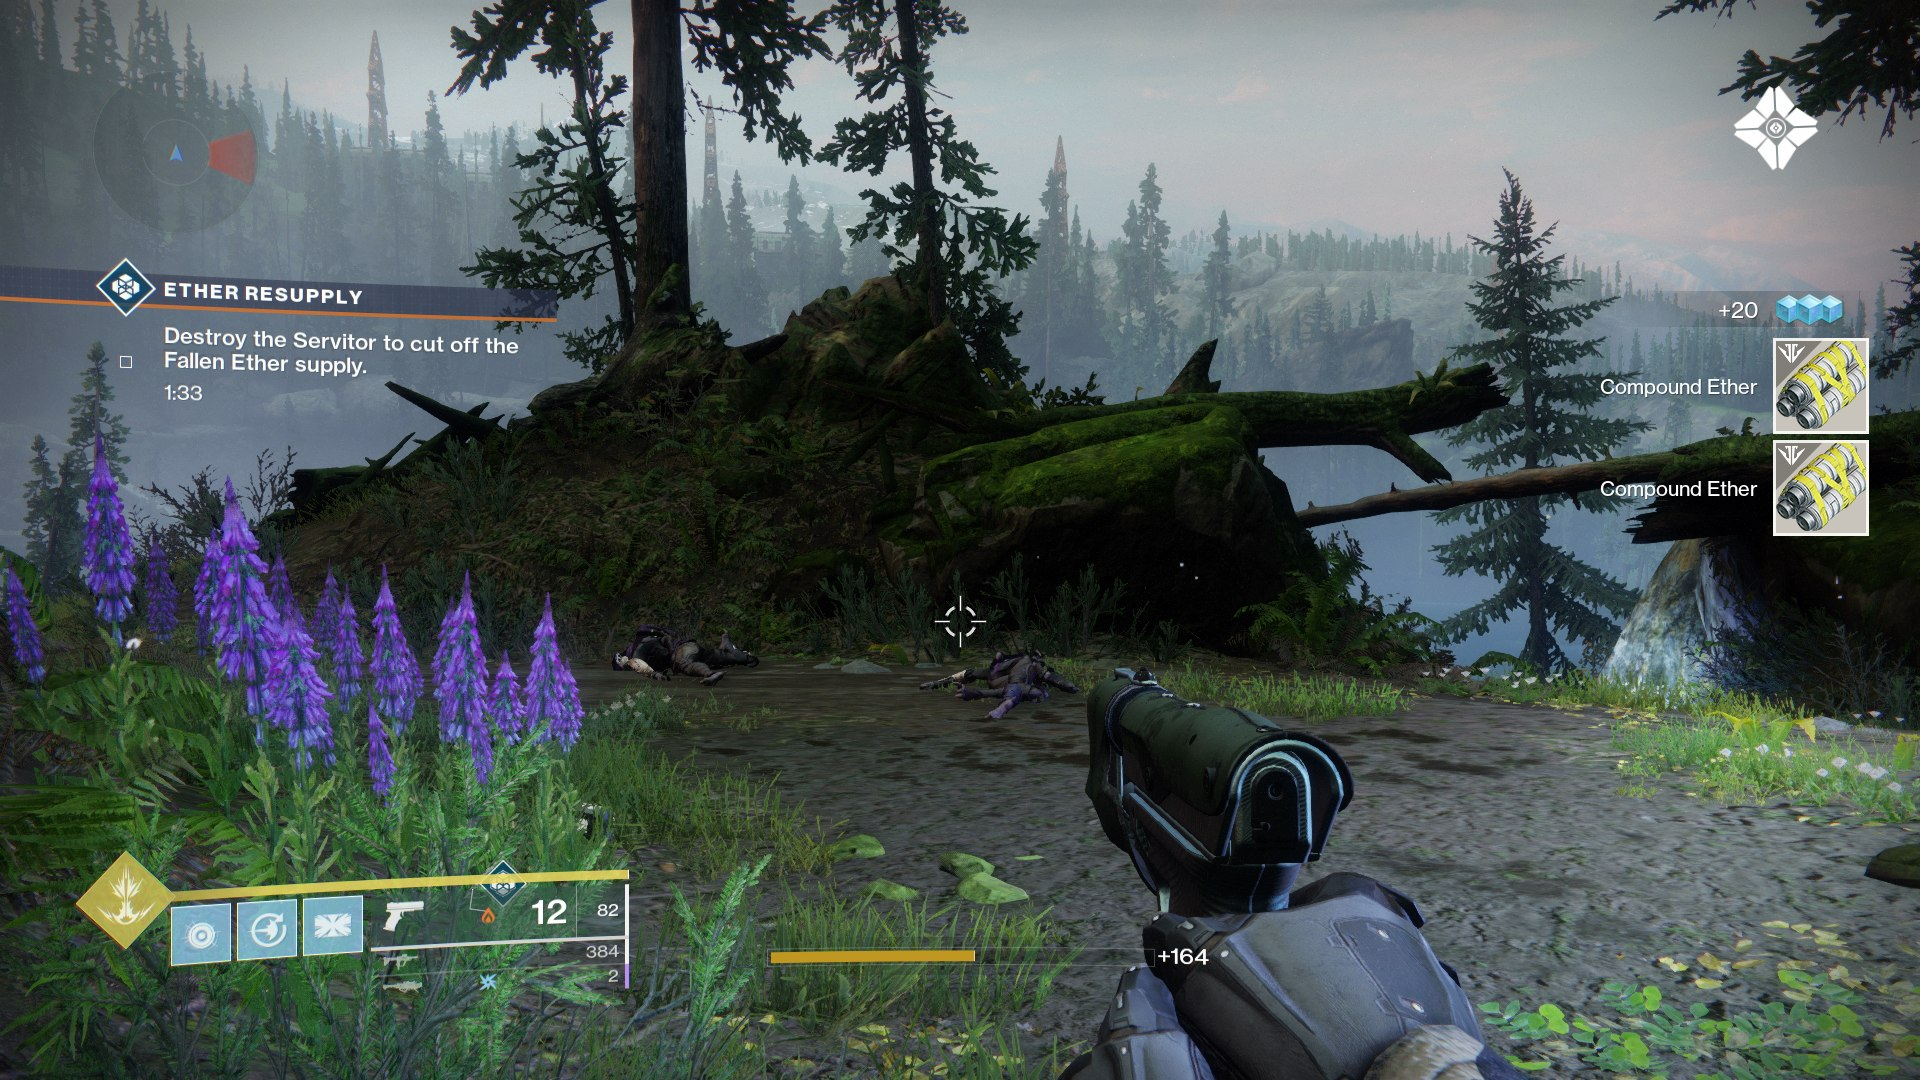 Destiny 2 Weapon Core Locations - How to Find Black Armory